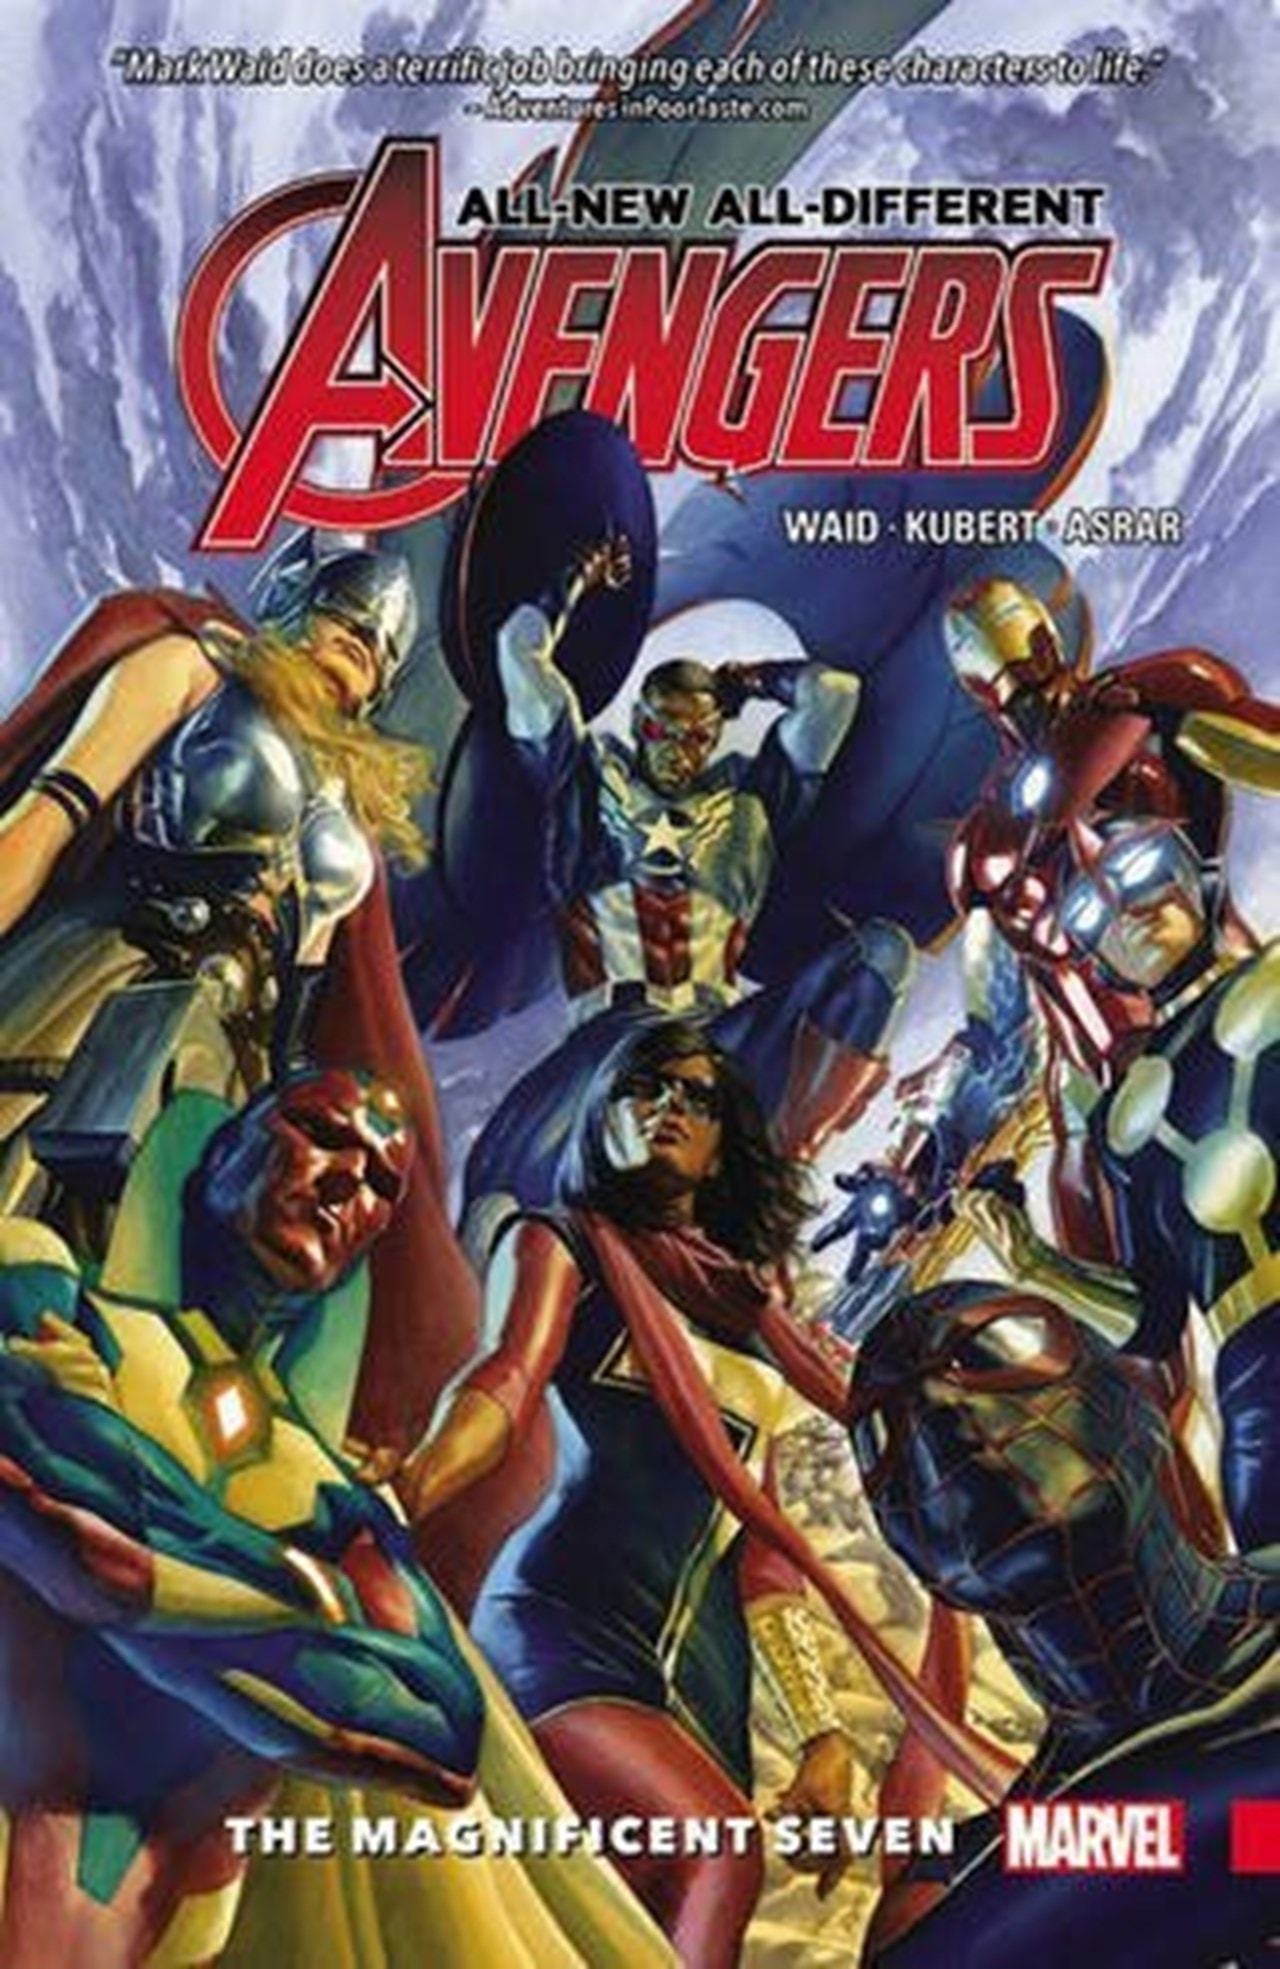 All New All Different Avengers Vol. 1: Magnificent Seven - 1